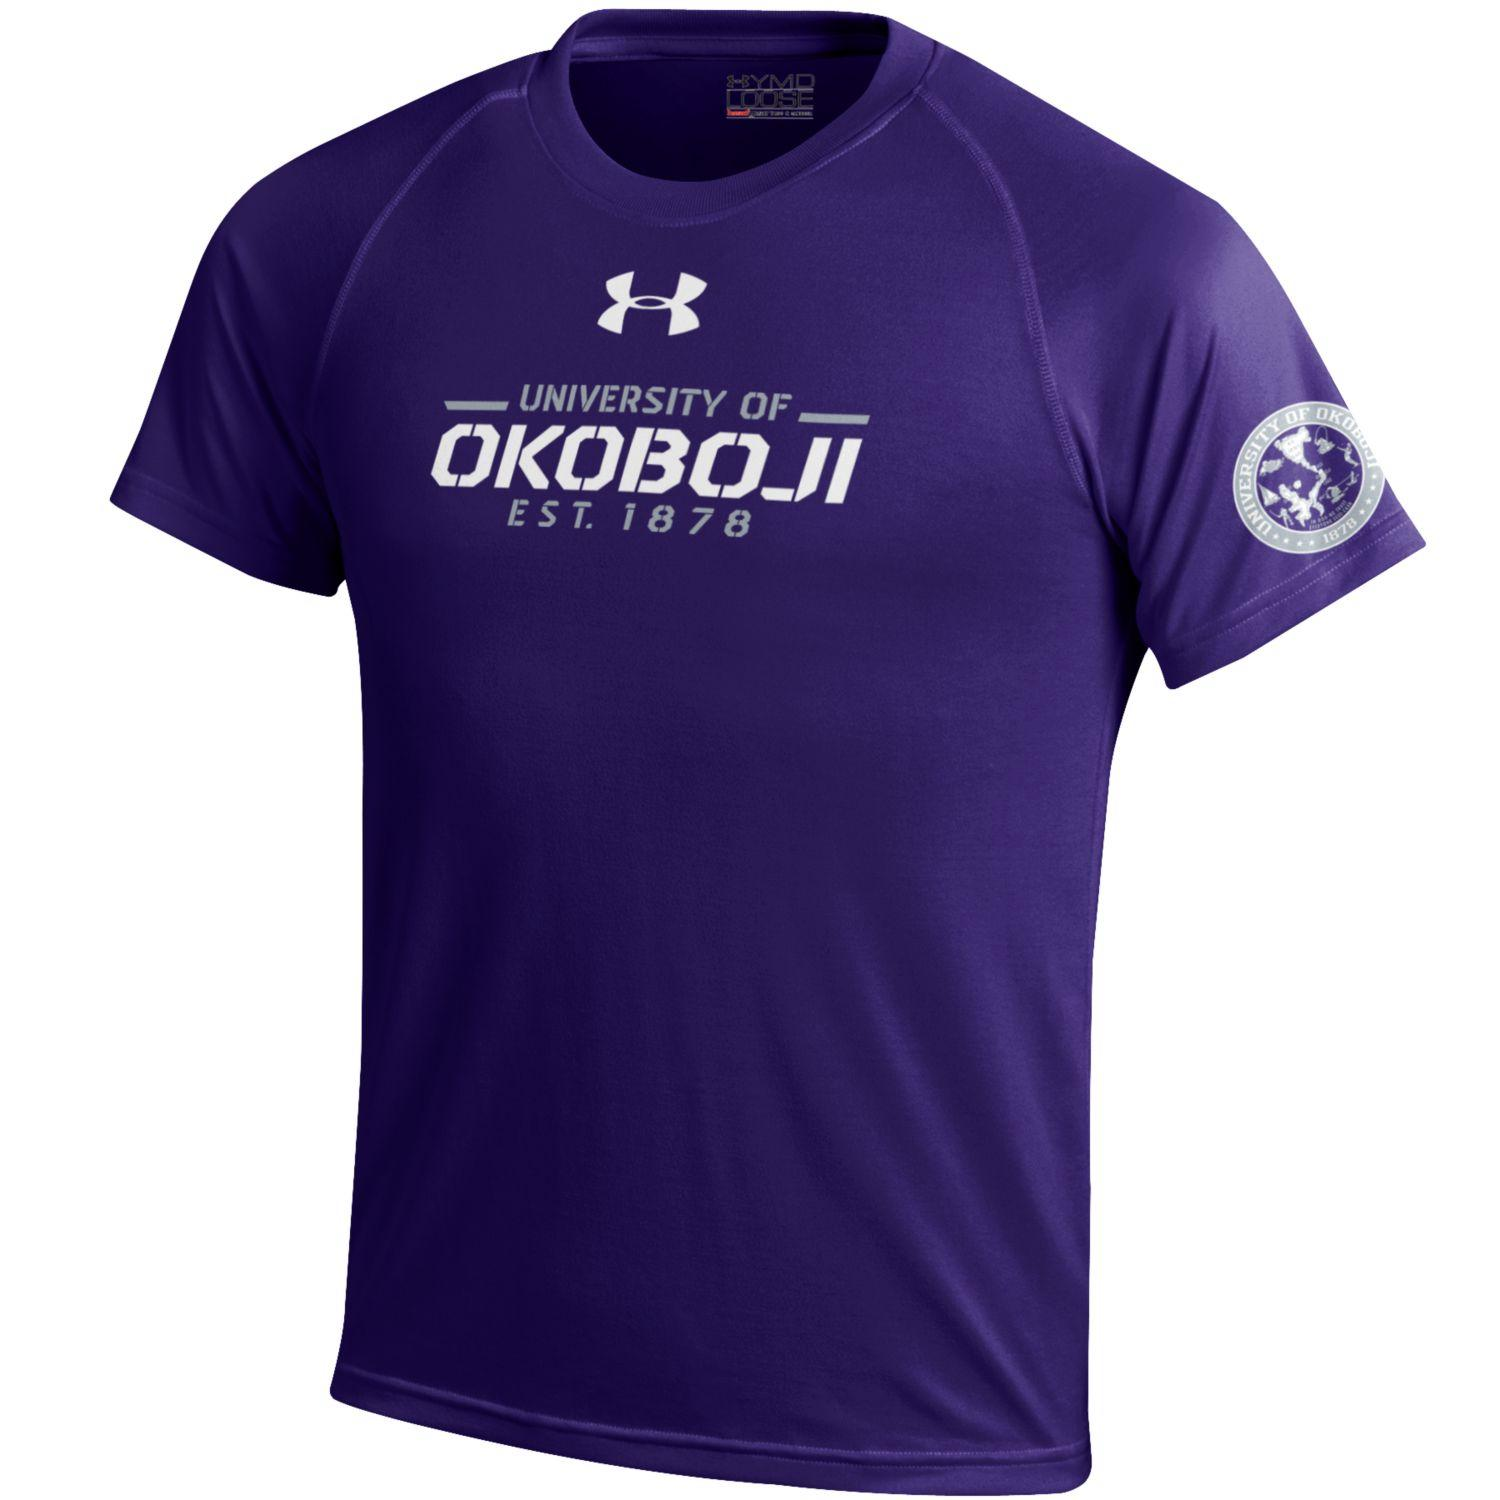 University of Okoboji Under Armour Purple Youth Performance Tee